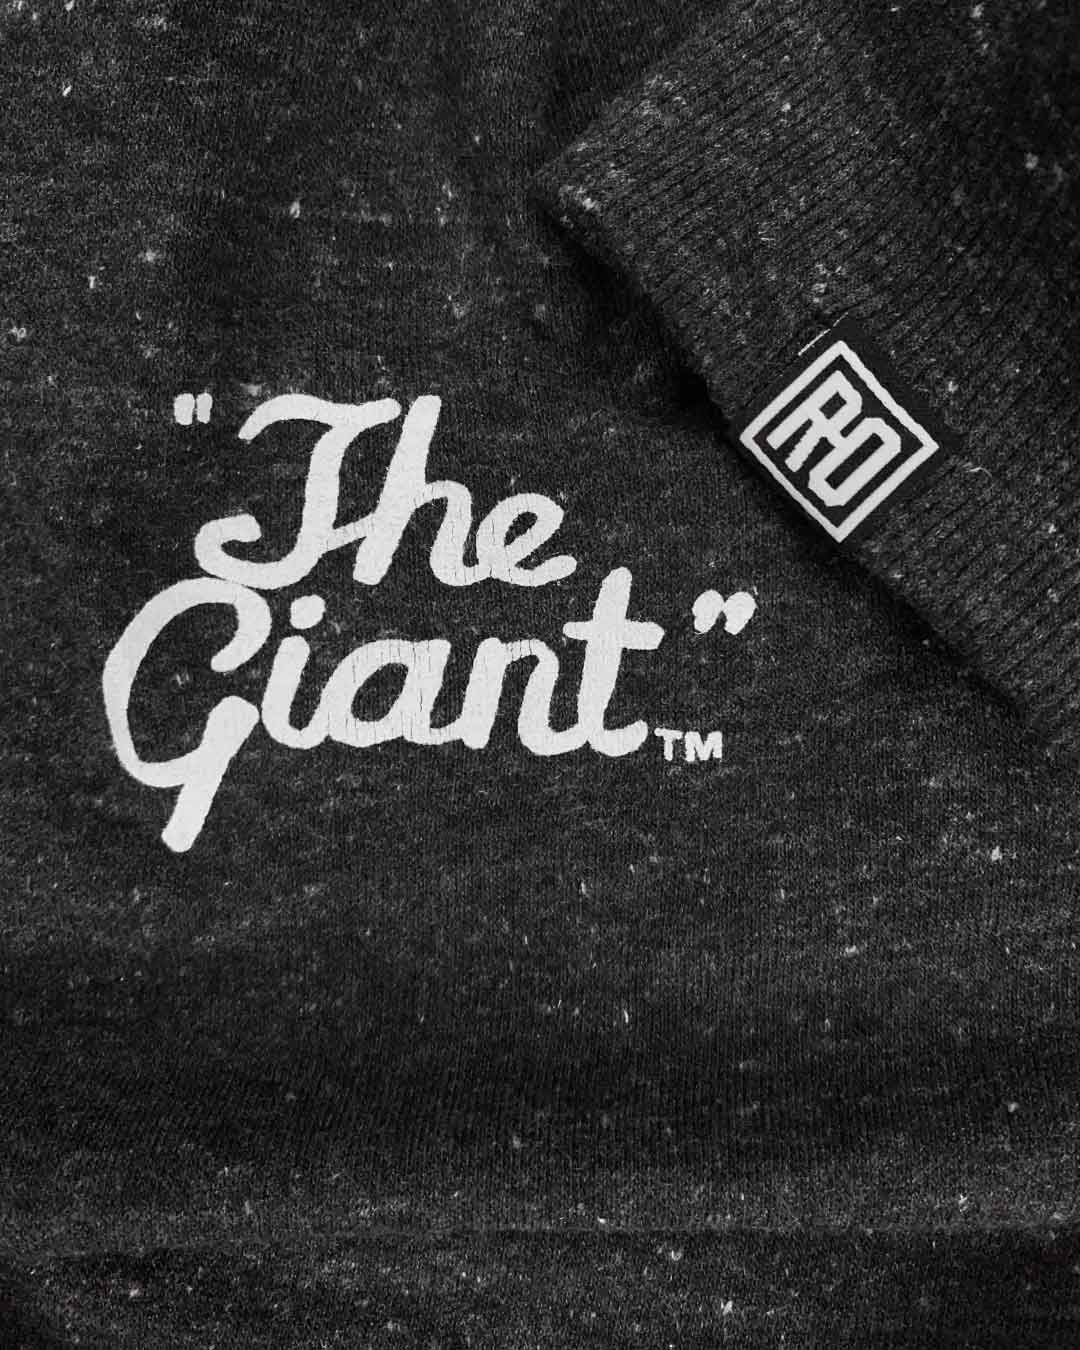 Andre the Giant Heritage Sweatshirt - Roots of Inc dba Roots of Fight